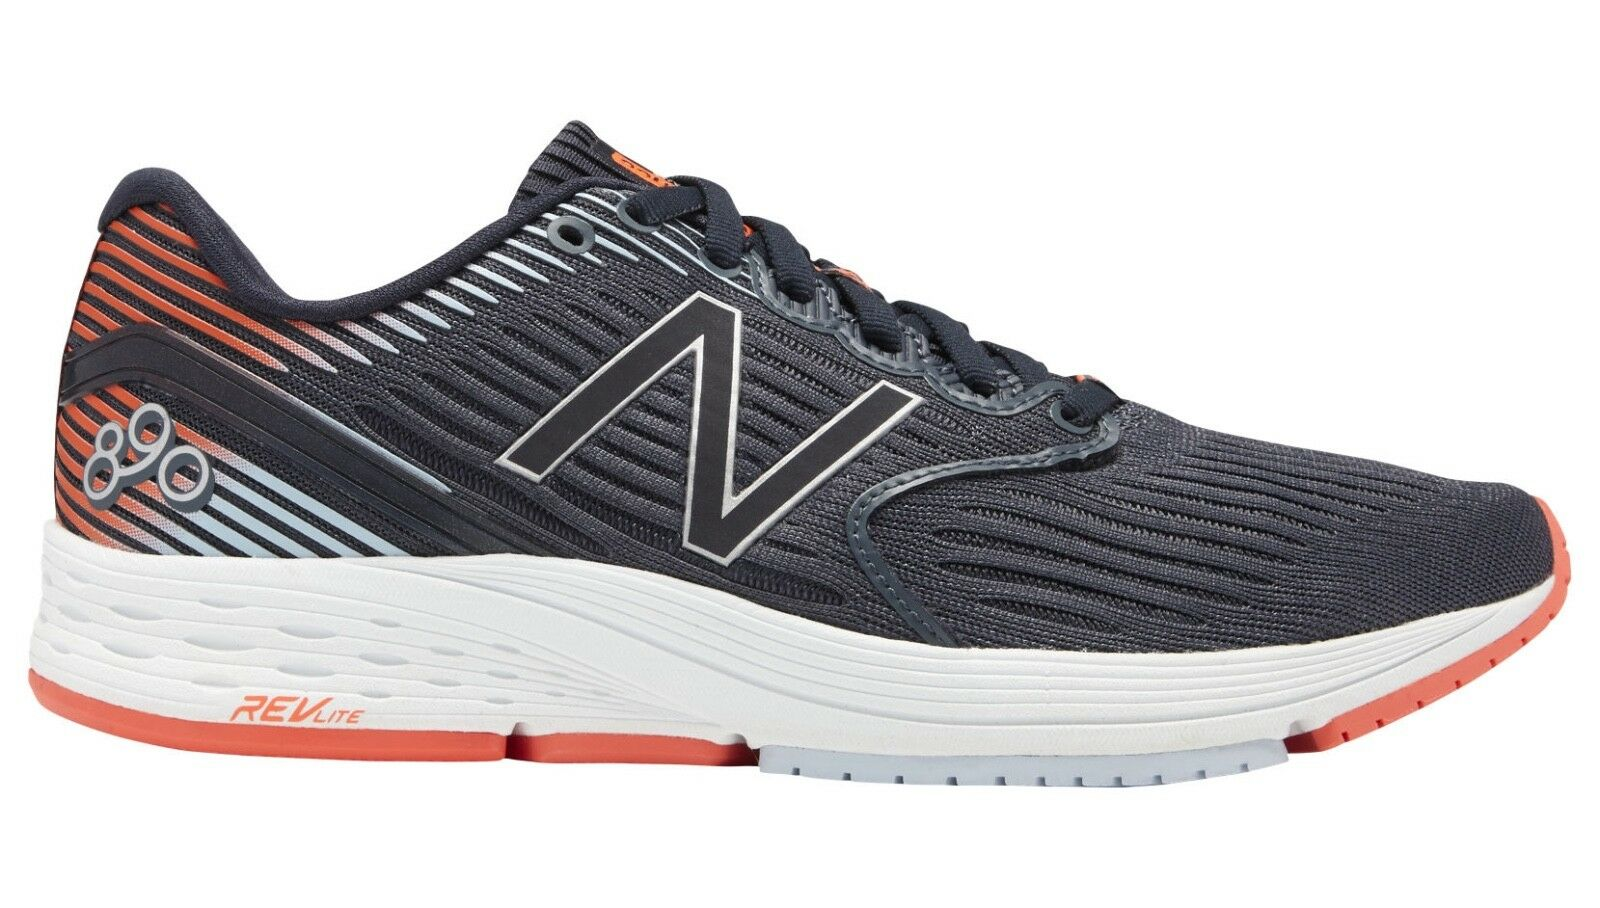 New Balance Femme W890TD6 Running Chaussures Outerspace with Dragonfly 890V6